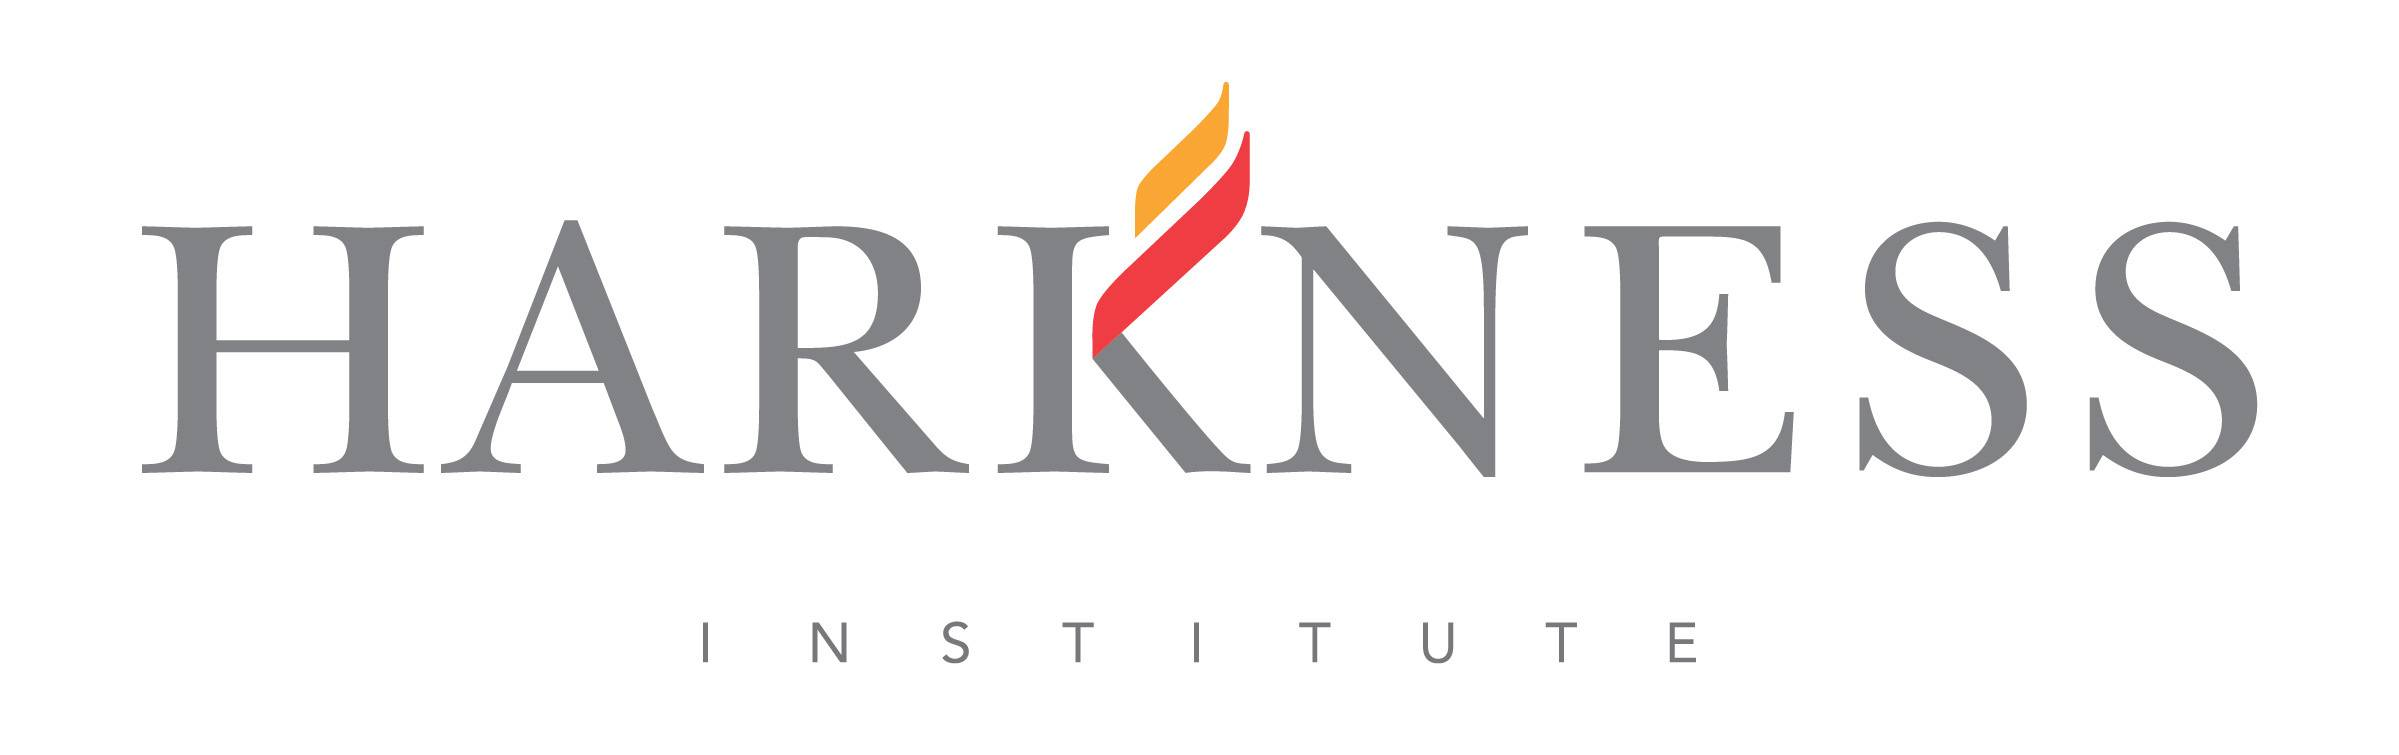 Logo of Harkness Initiative